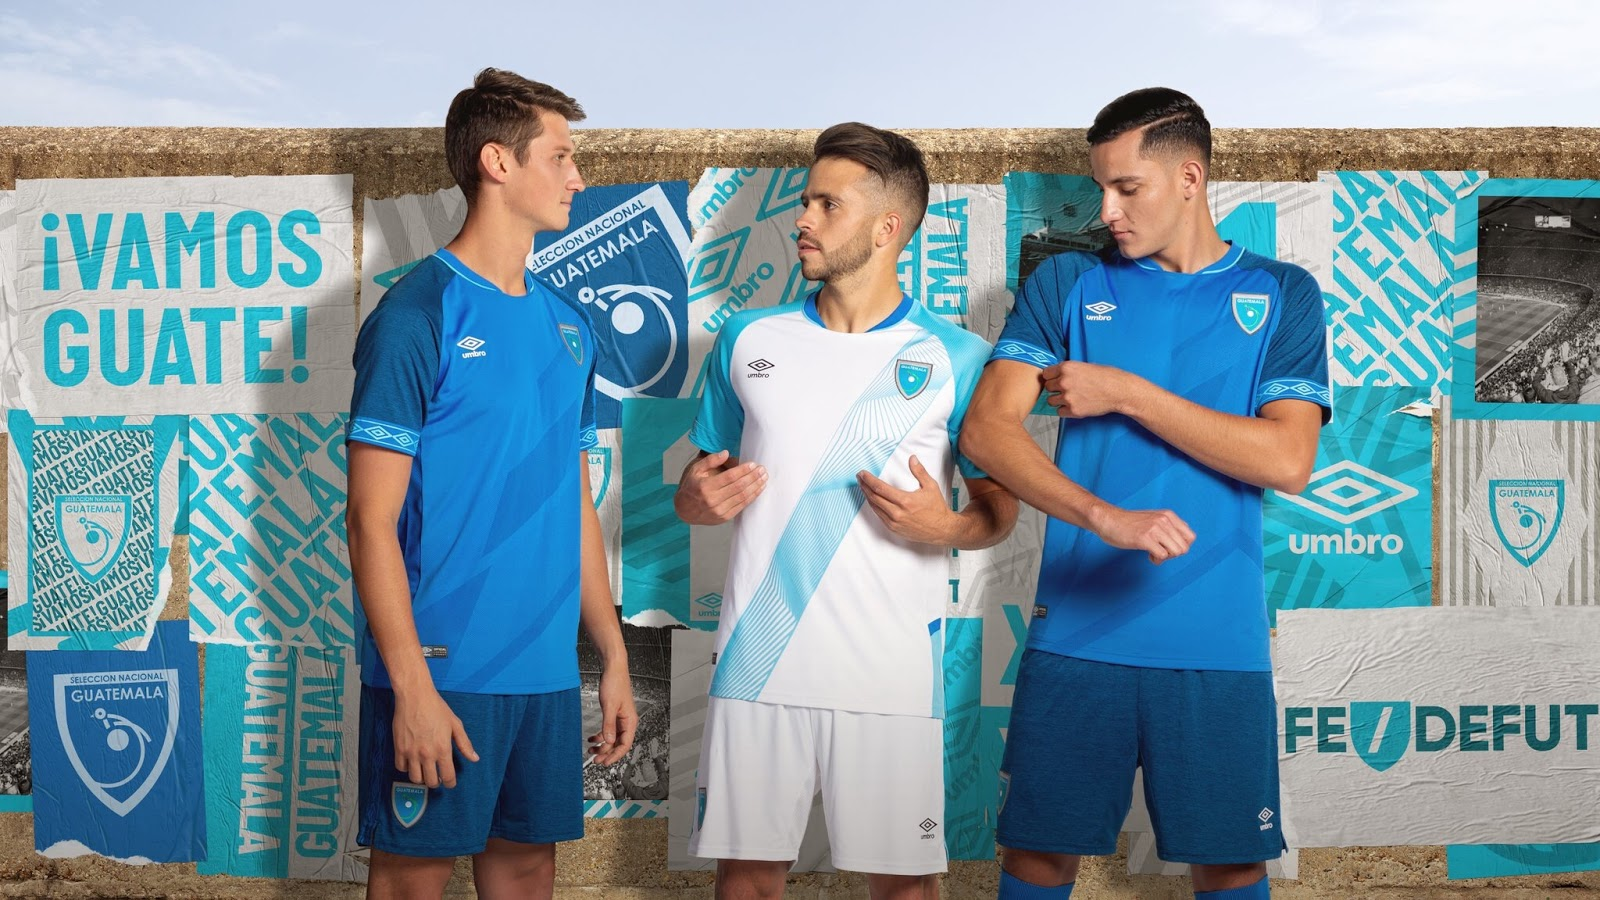 e48a11023f3 The new Guatemala kits for the 2019 CONCACAF Gold Cup have been revealed  yesterday night. Made by long-term supplier Umbro, they introduce bespoke  designs ...